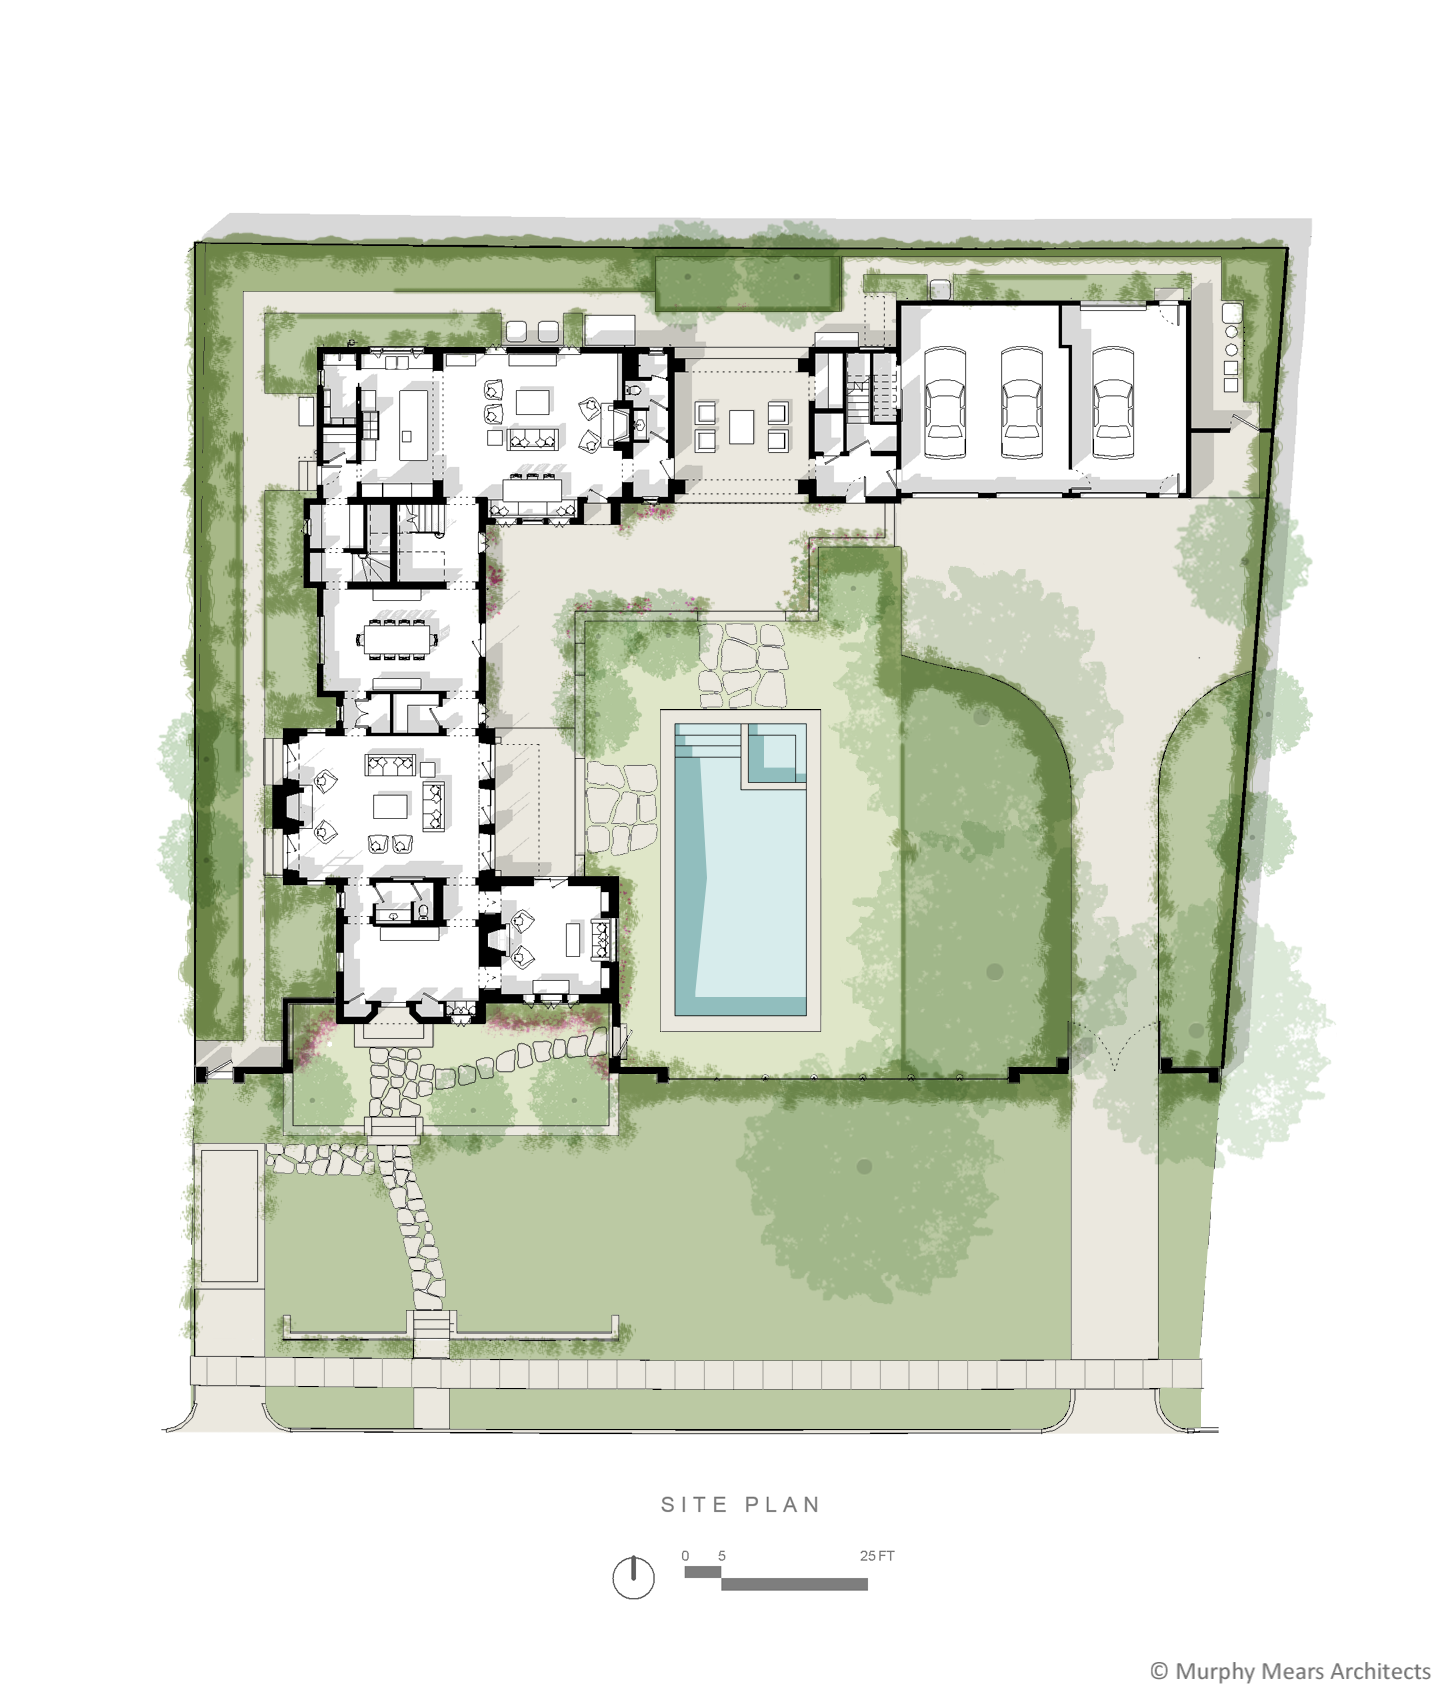 Courtyard House - Site Plan showing the public entry and private drive separated on opposite sides of the site by a central outdoor space.